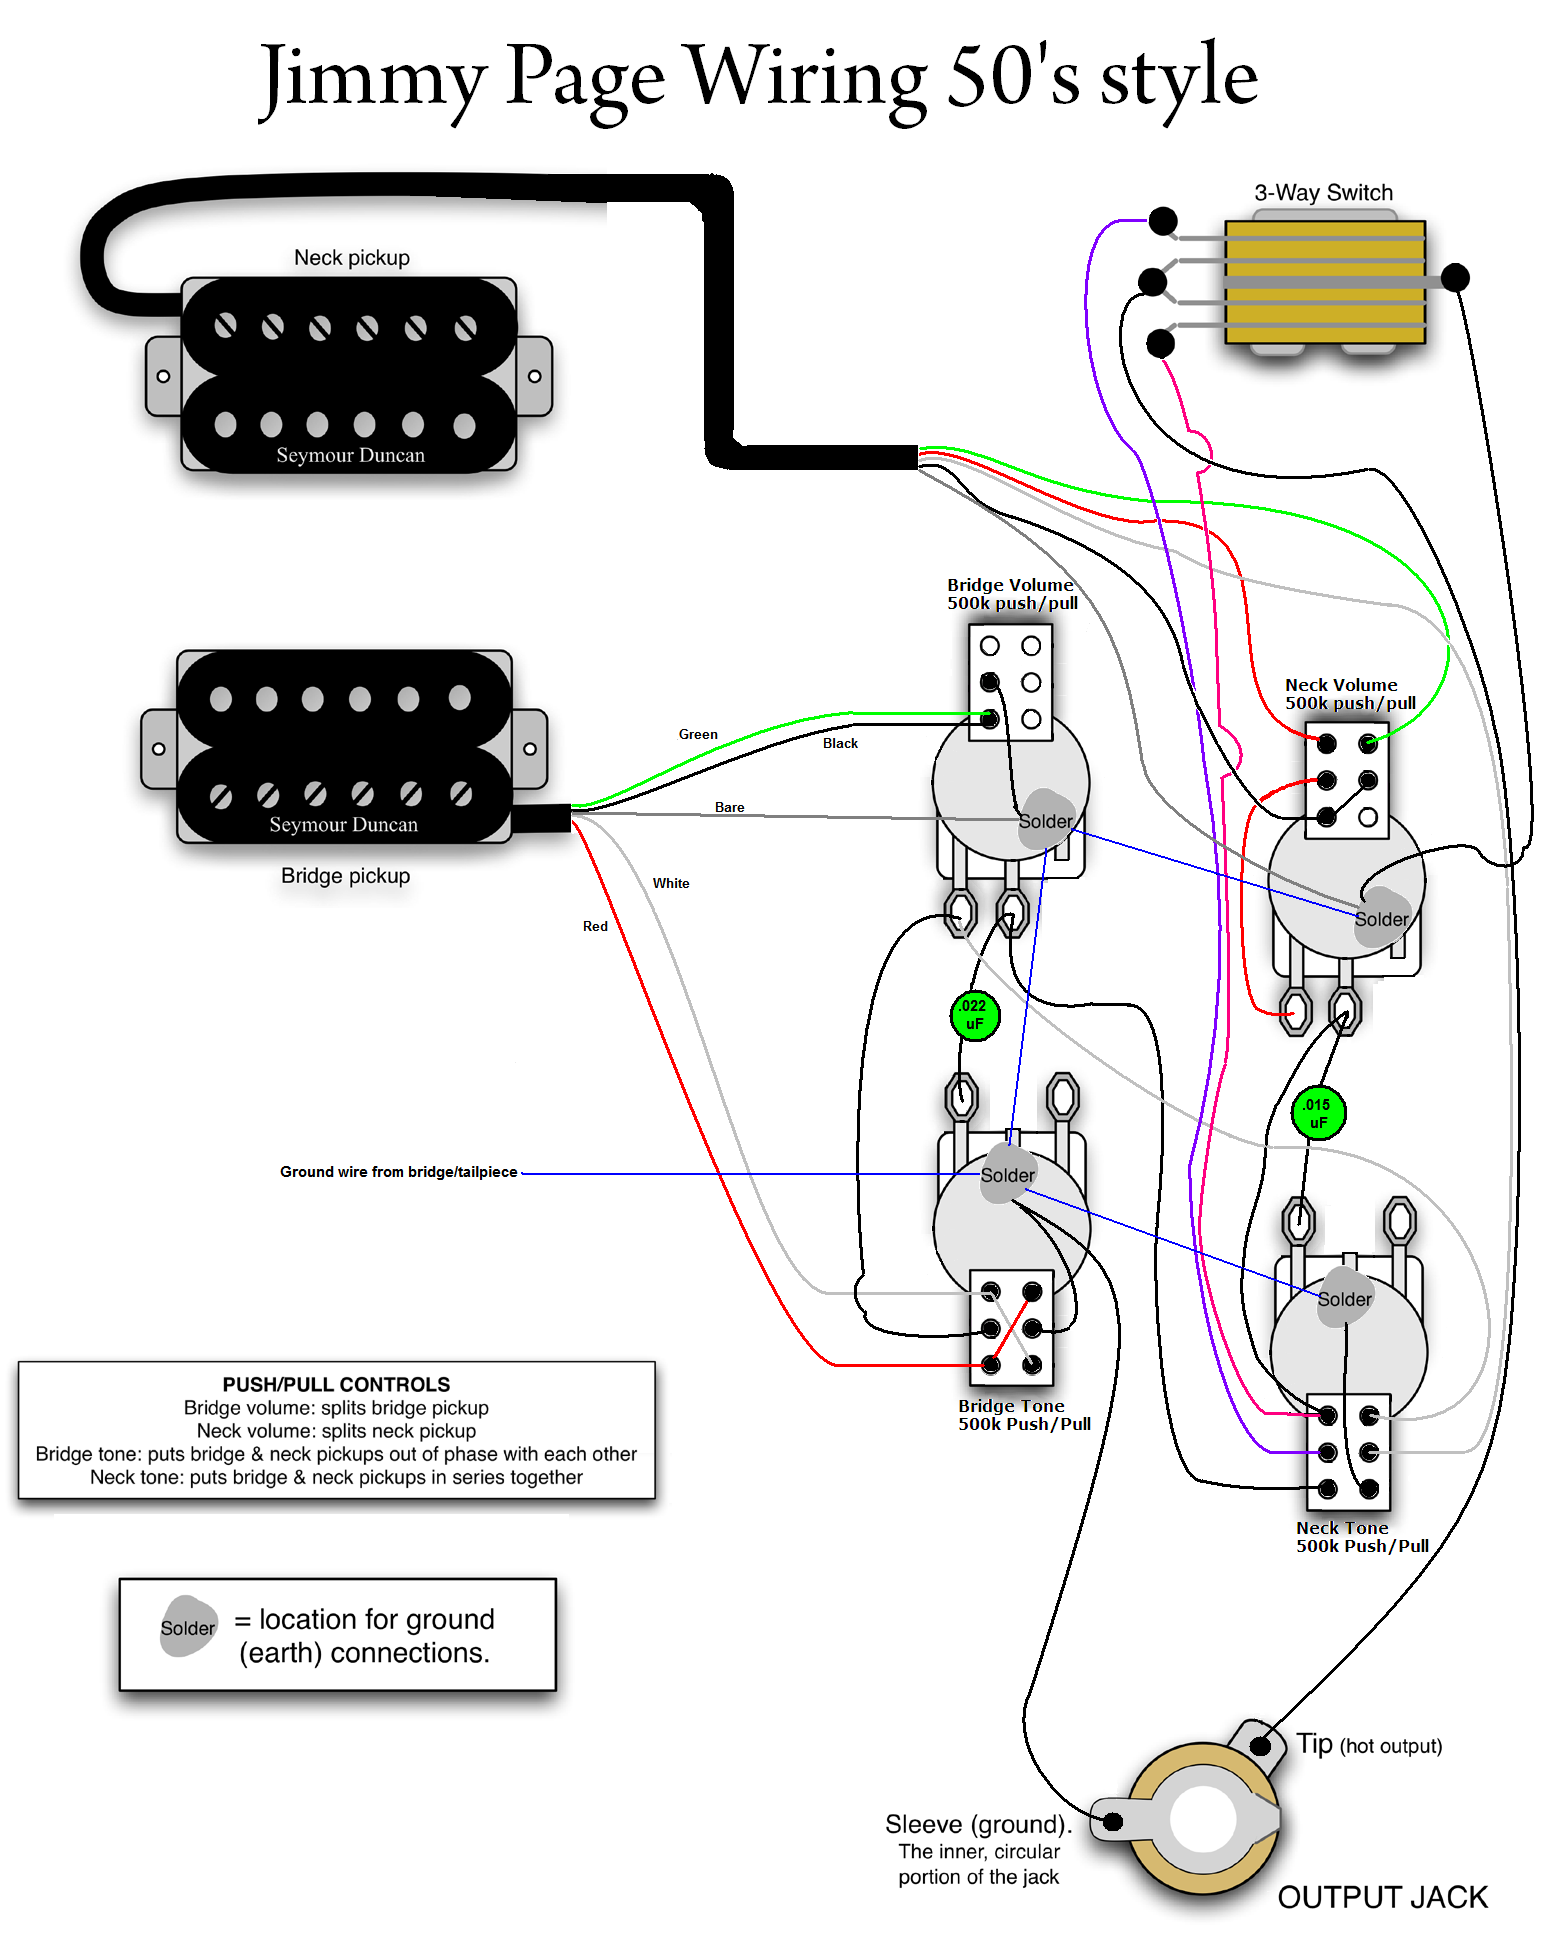 hight resolution of jimmy page wiring diagram coil split simple wiring schema gibson les paul wiring schematic push pull coil tap wiring diagram jimmy page